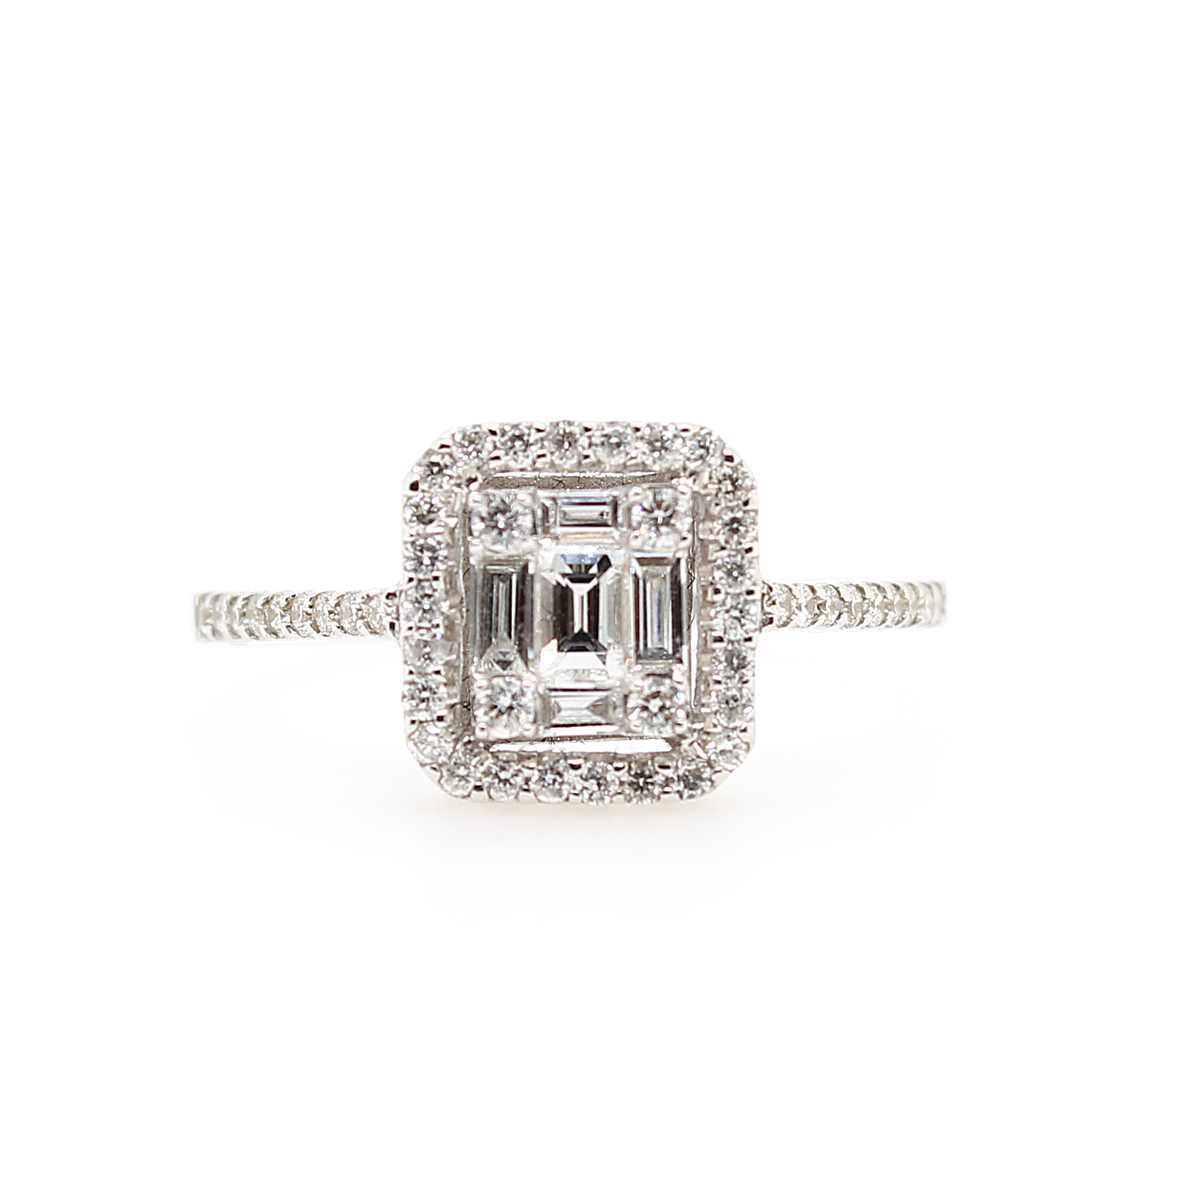 18 Karat White Gold Square Shaped Diamond Halo Ring